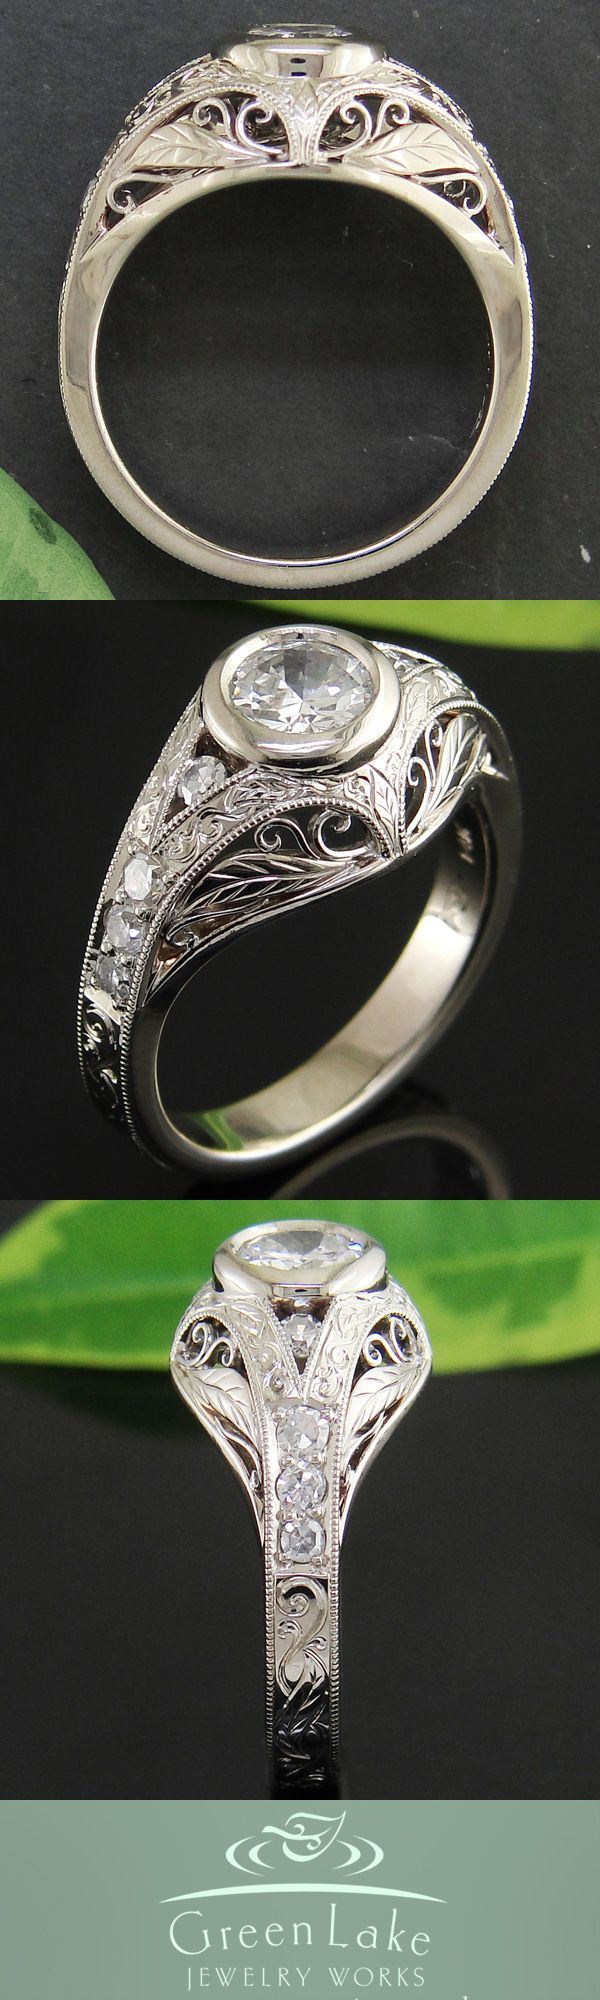 White Gold And Diamond Engagement Ring With Old World Filigree